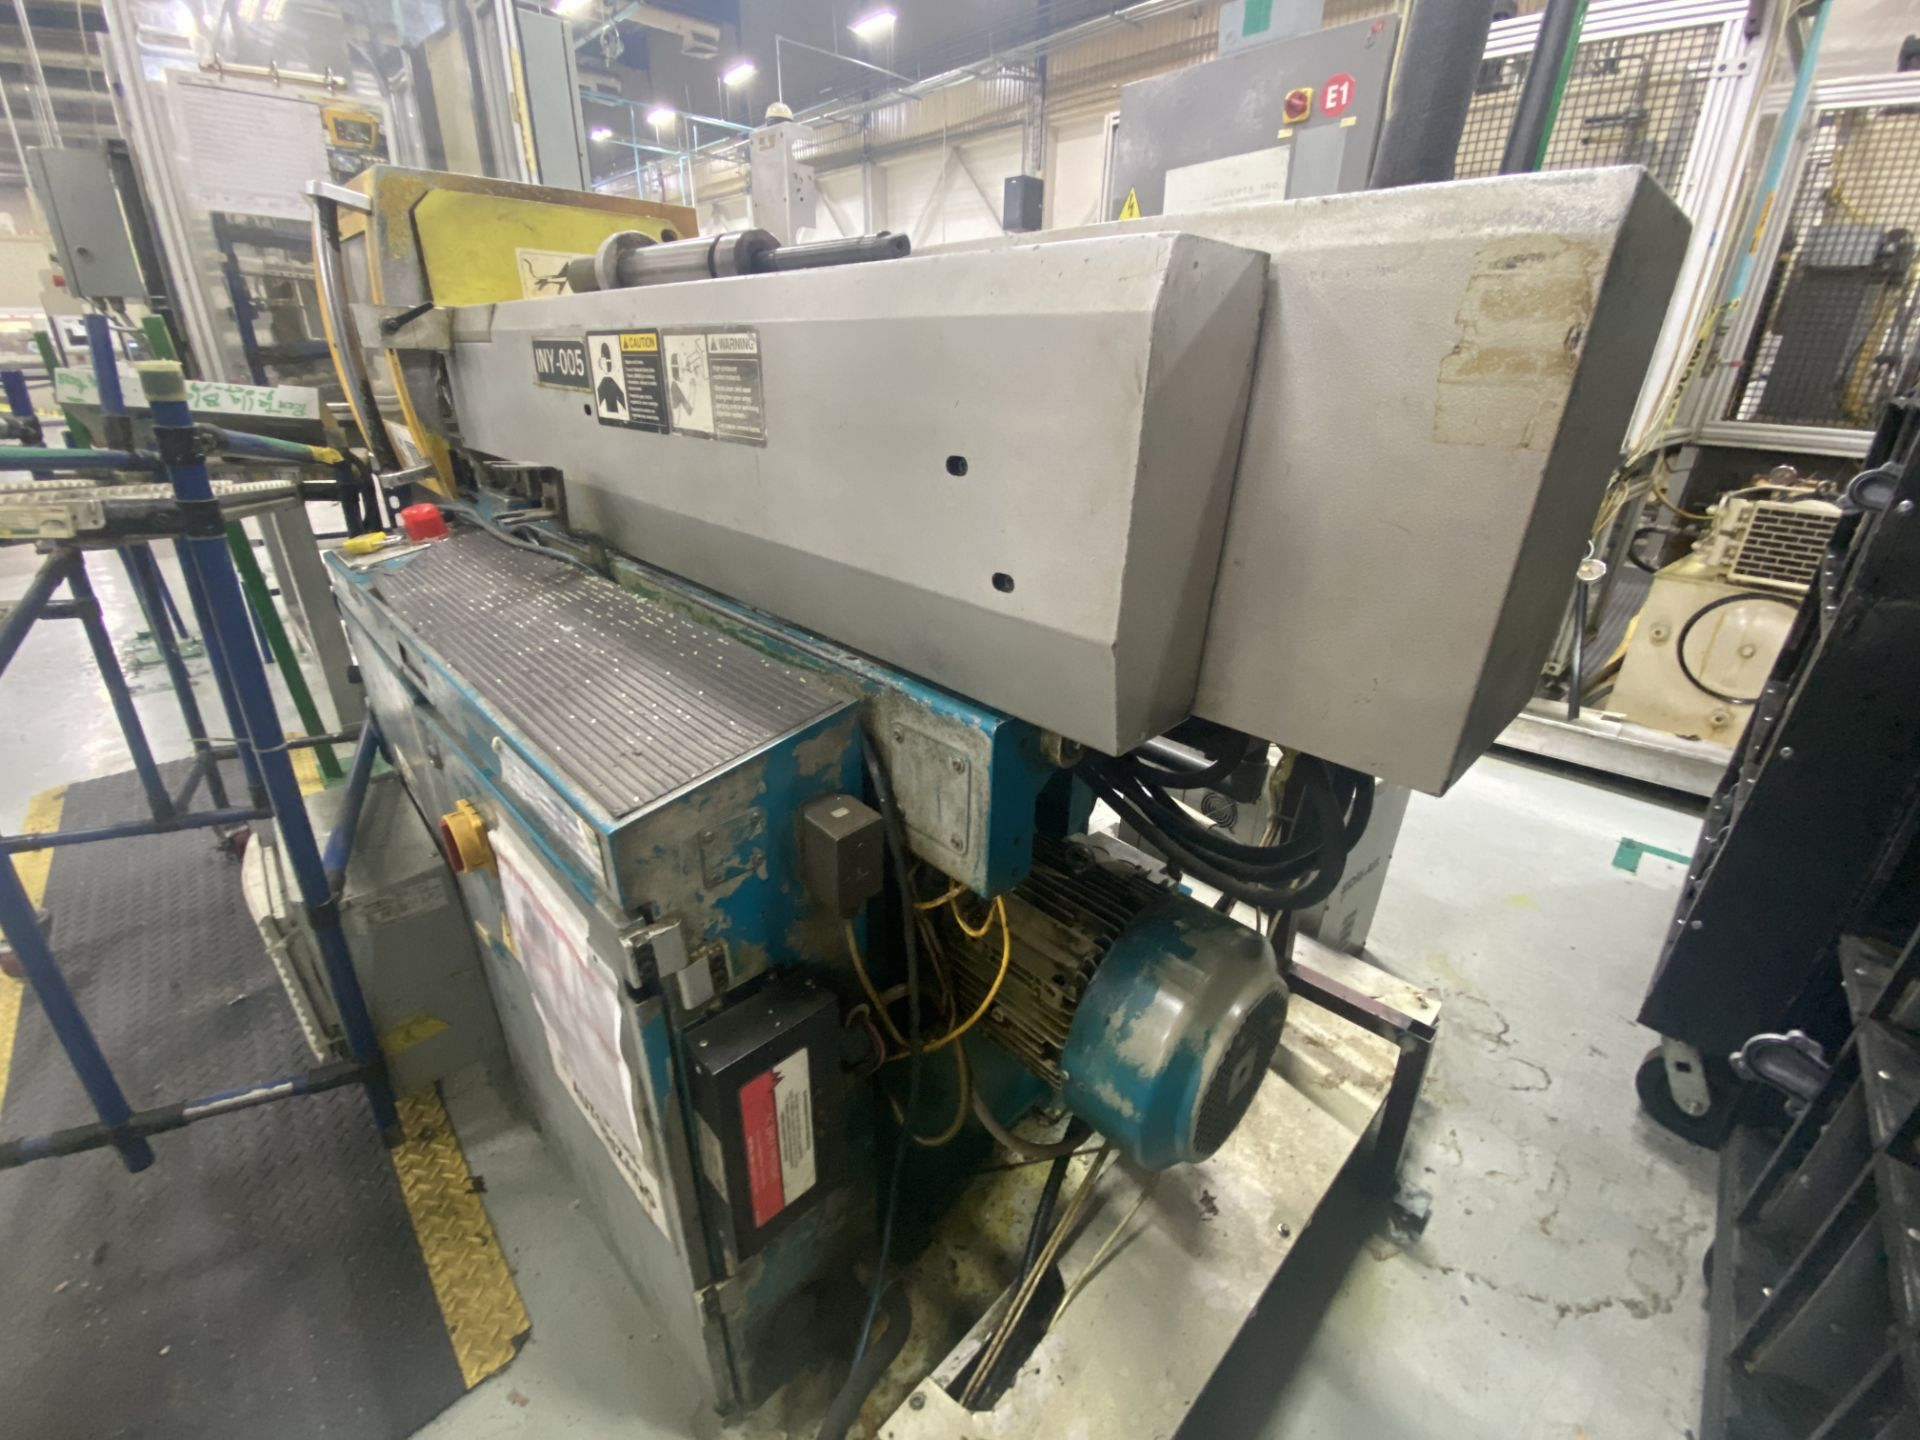 Lot 59 - Boy Machine Plastic Injection Machine, year 2004, model 37107, S / N P7D38-1